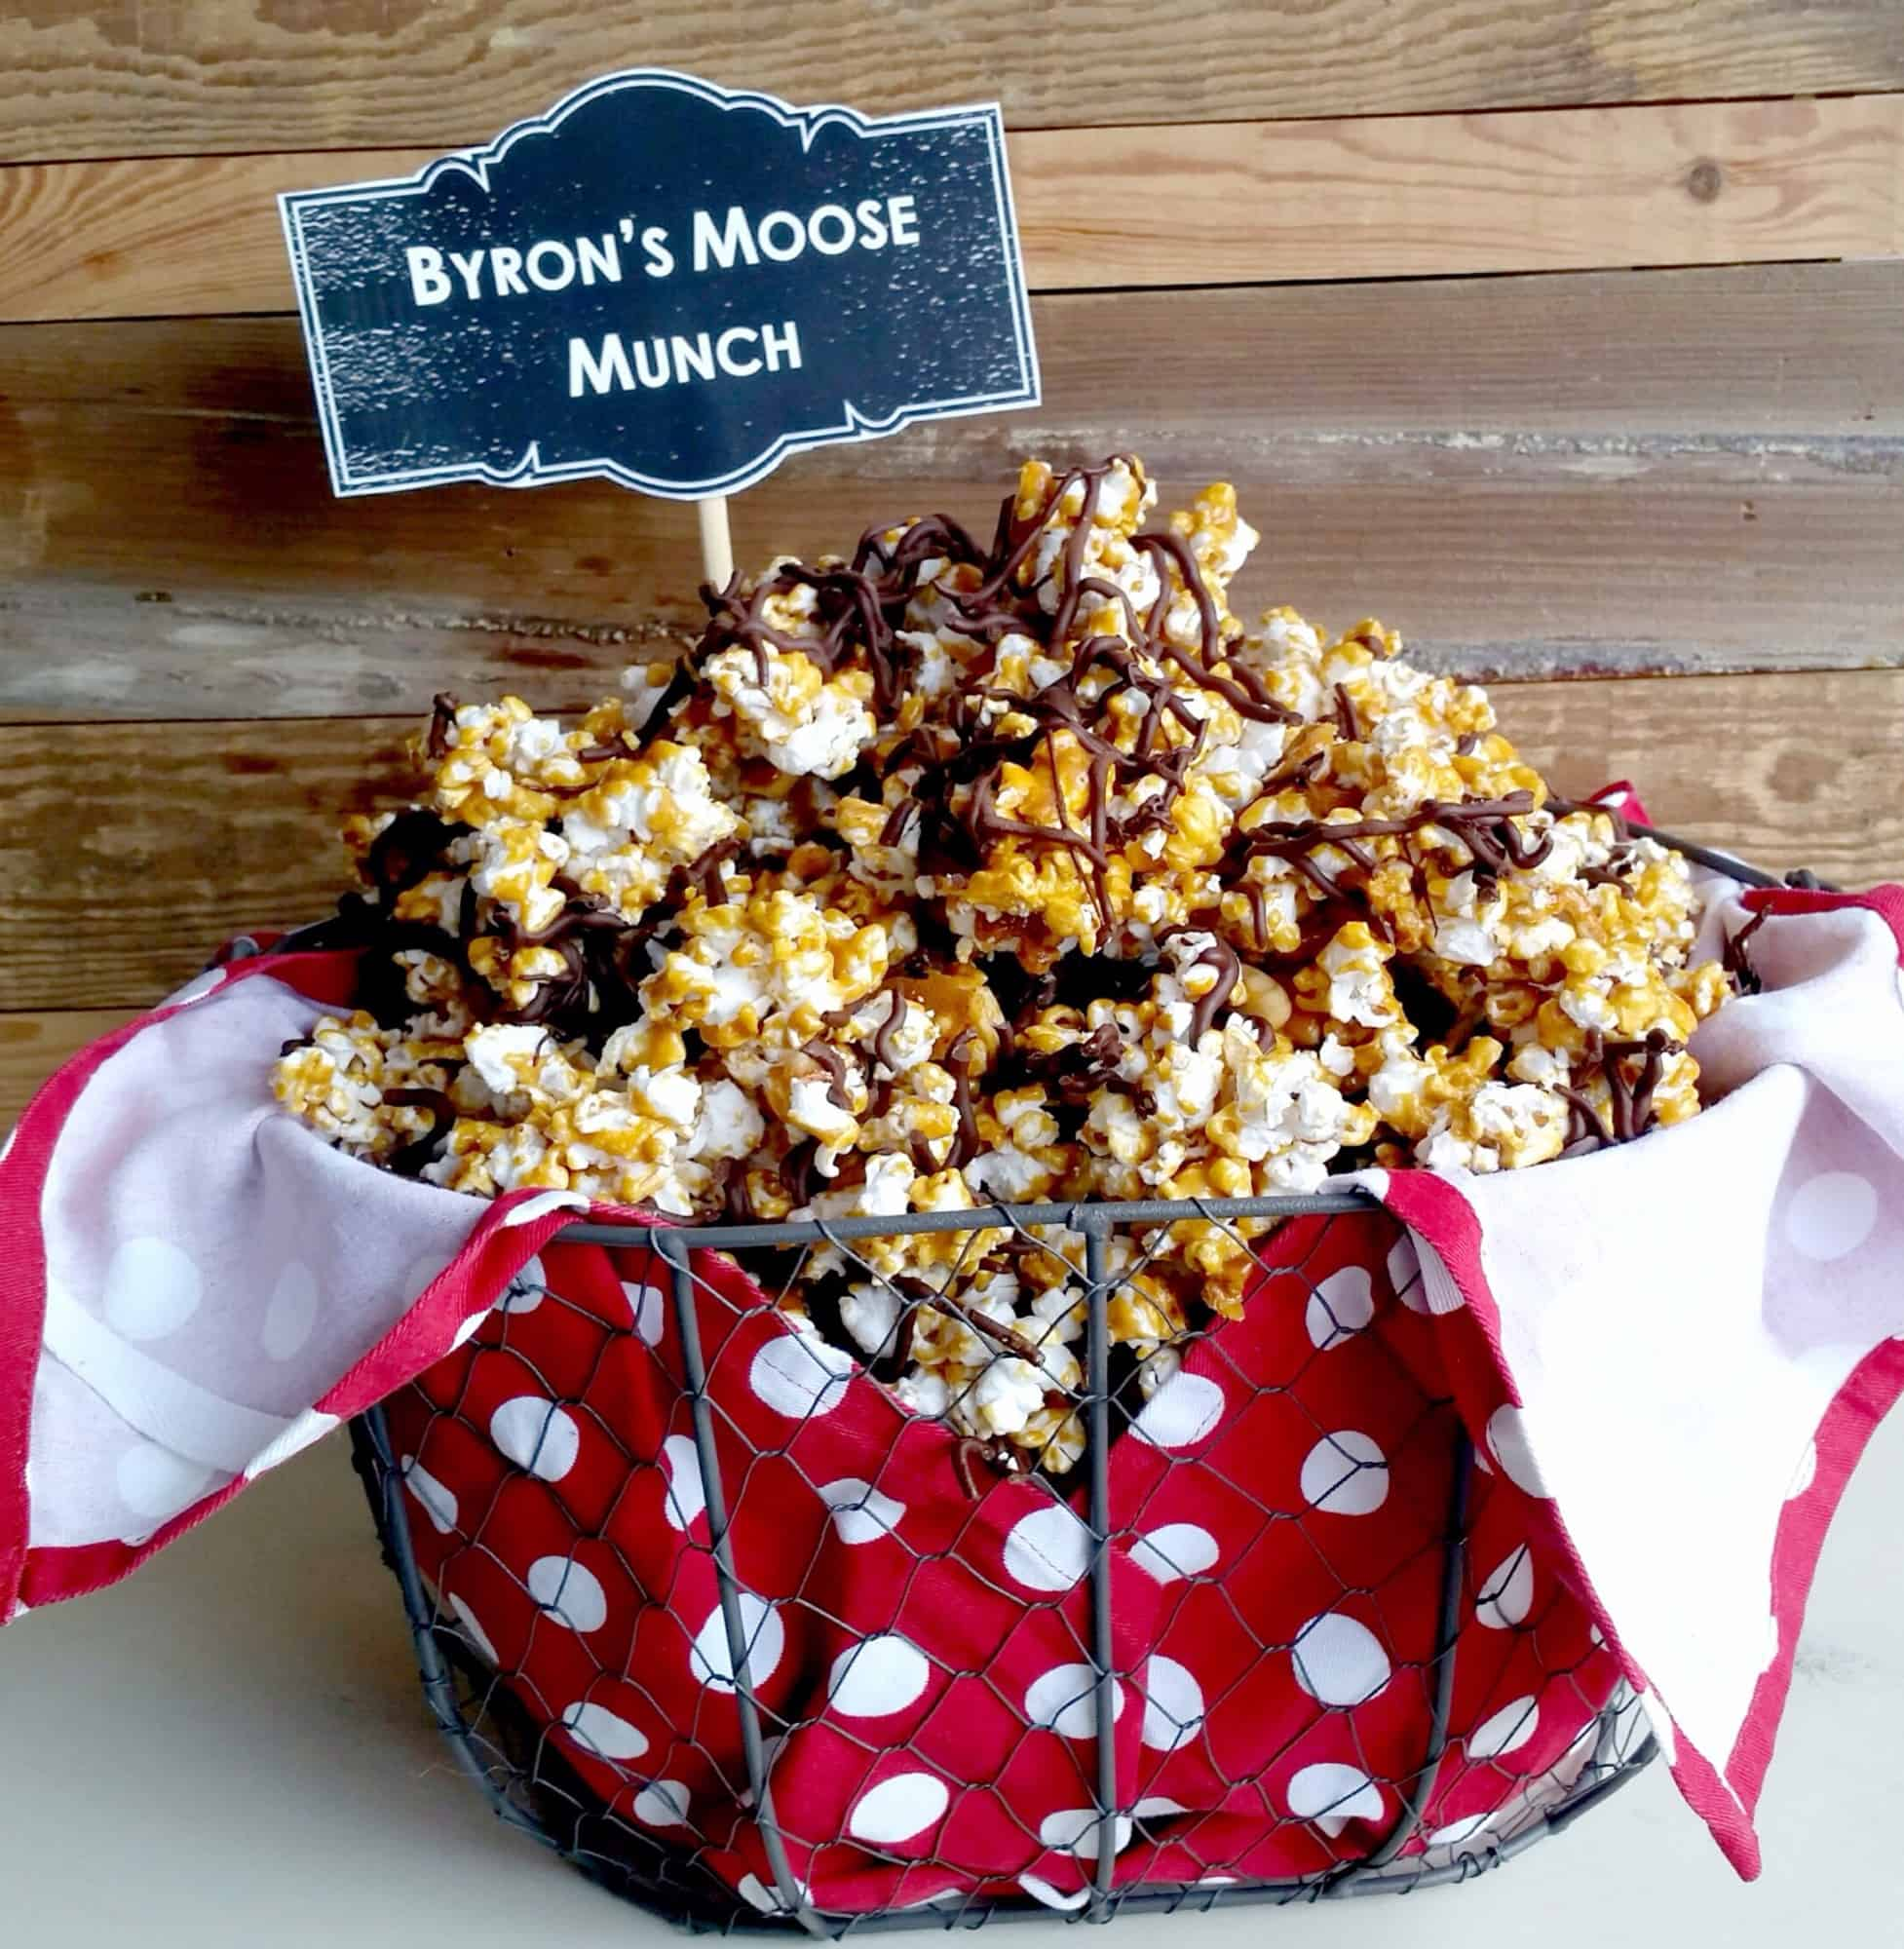 Byron's Moose Munch & Candy Bar